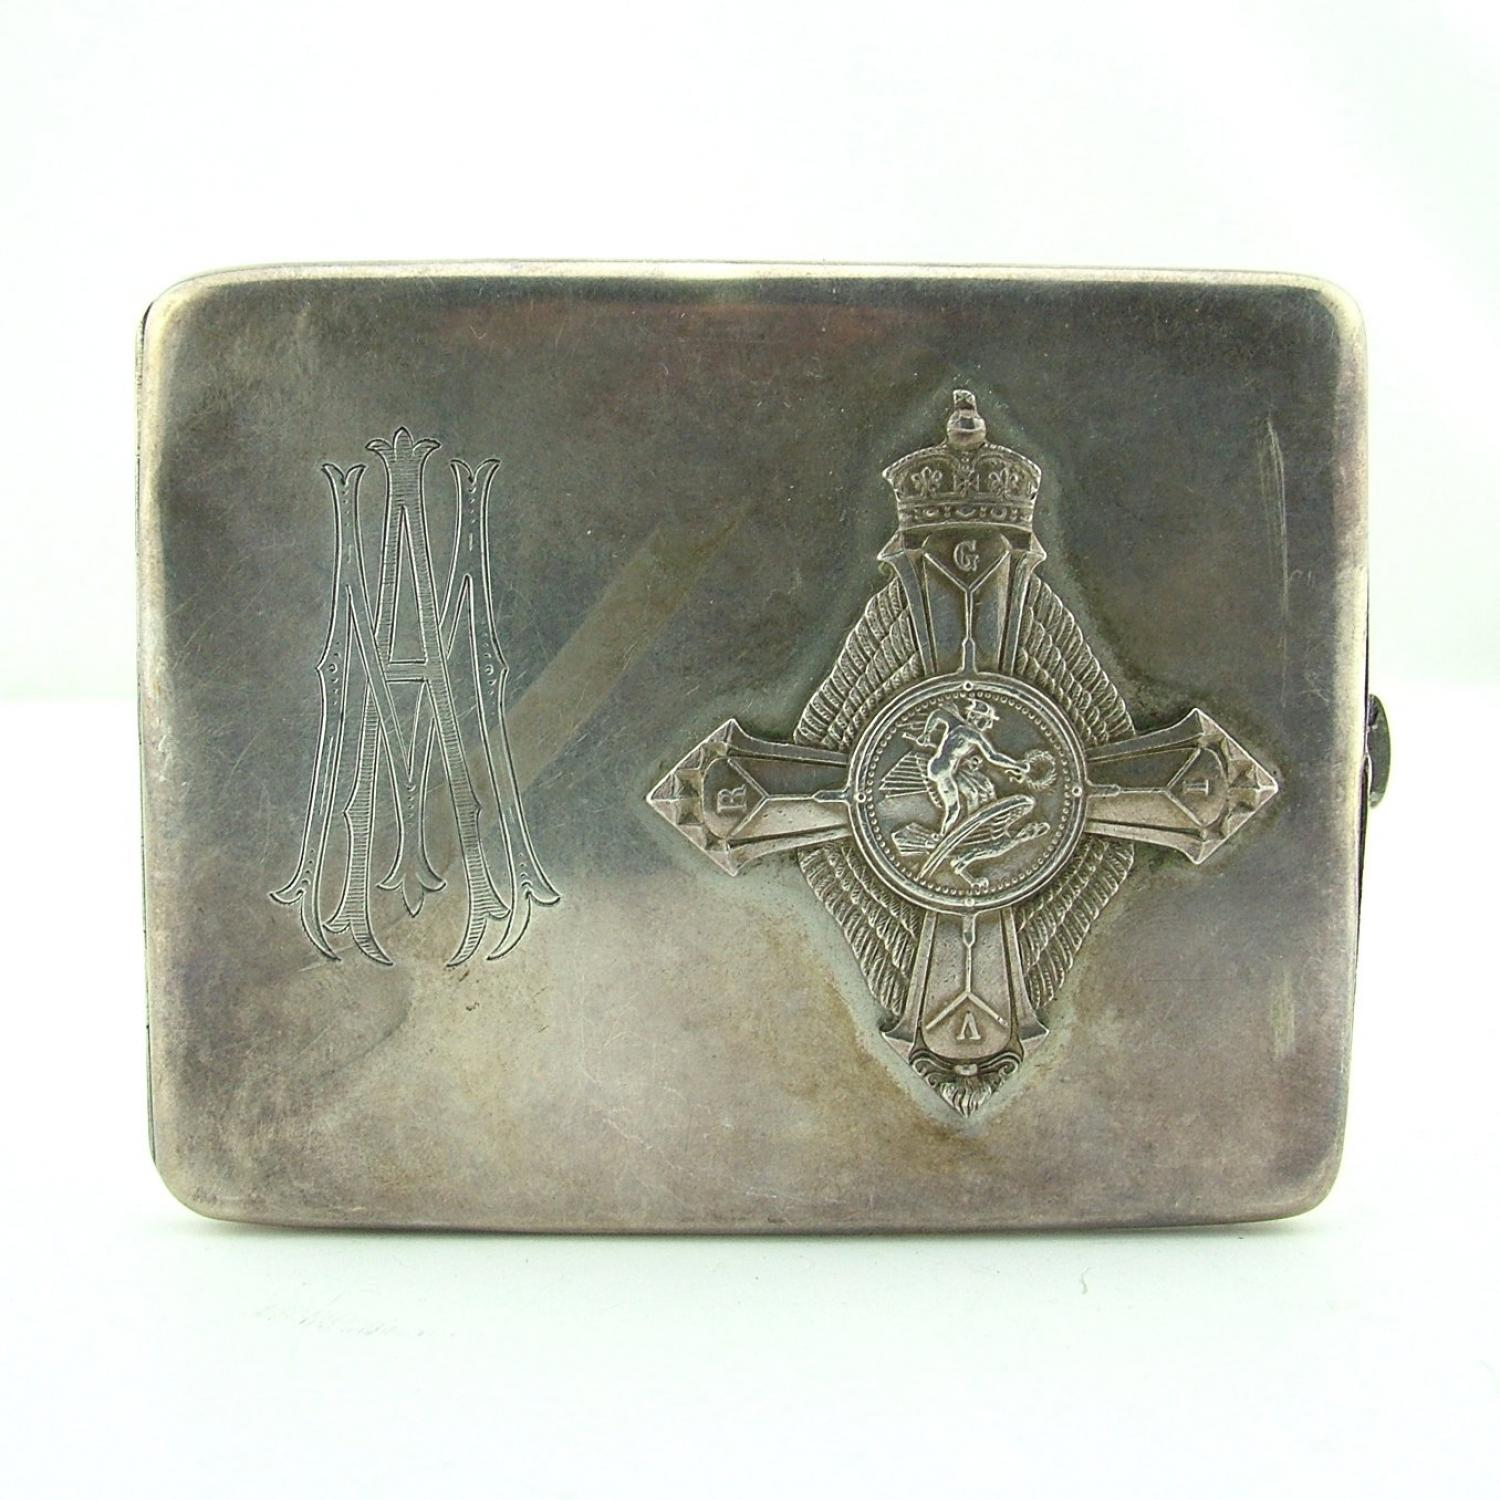 RAF cigarette case with AFC